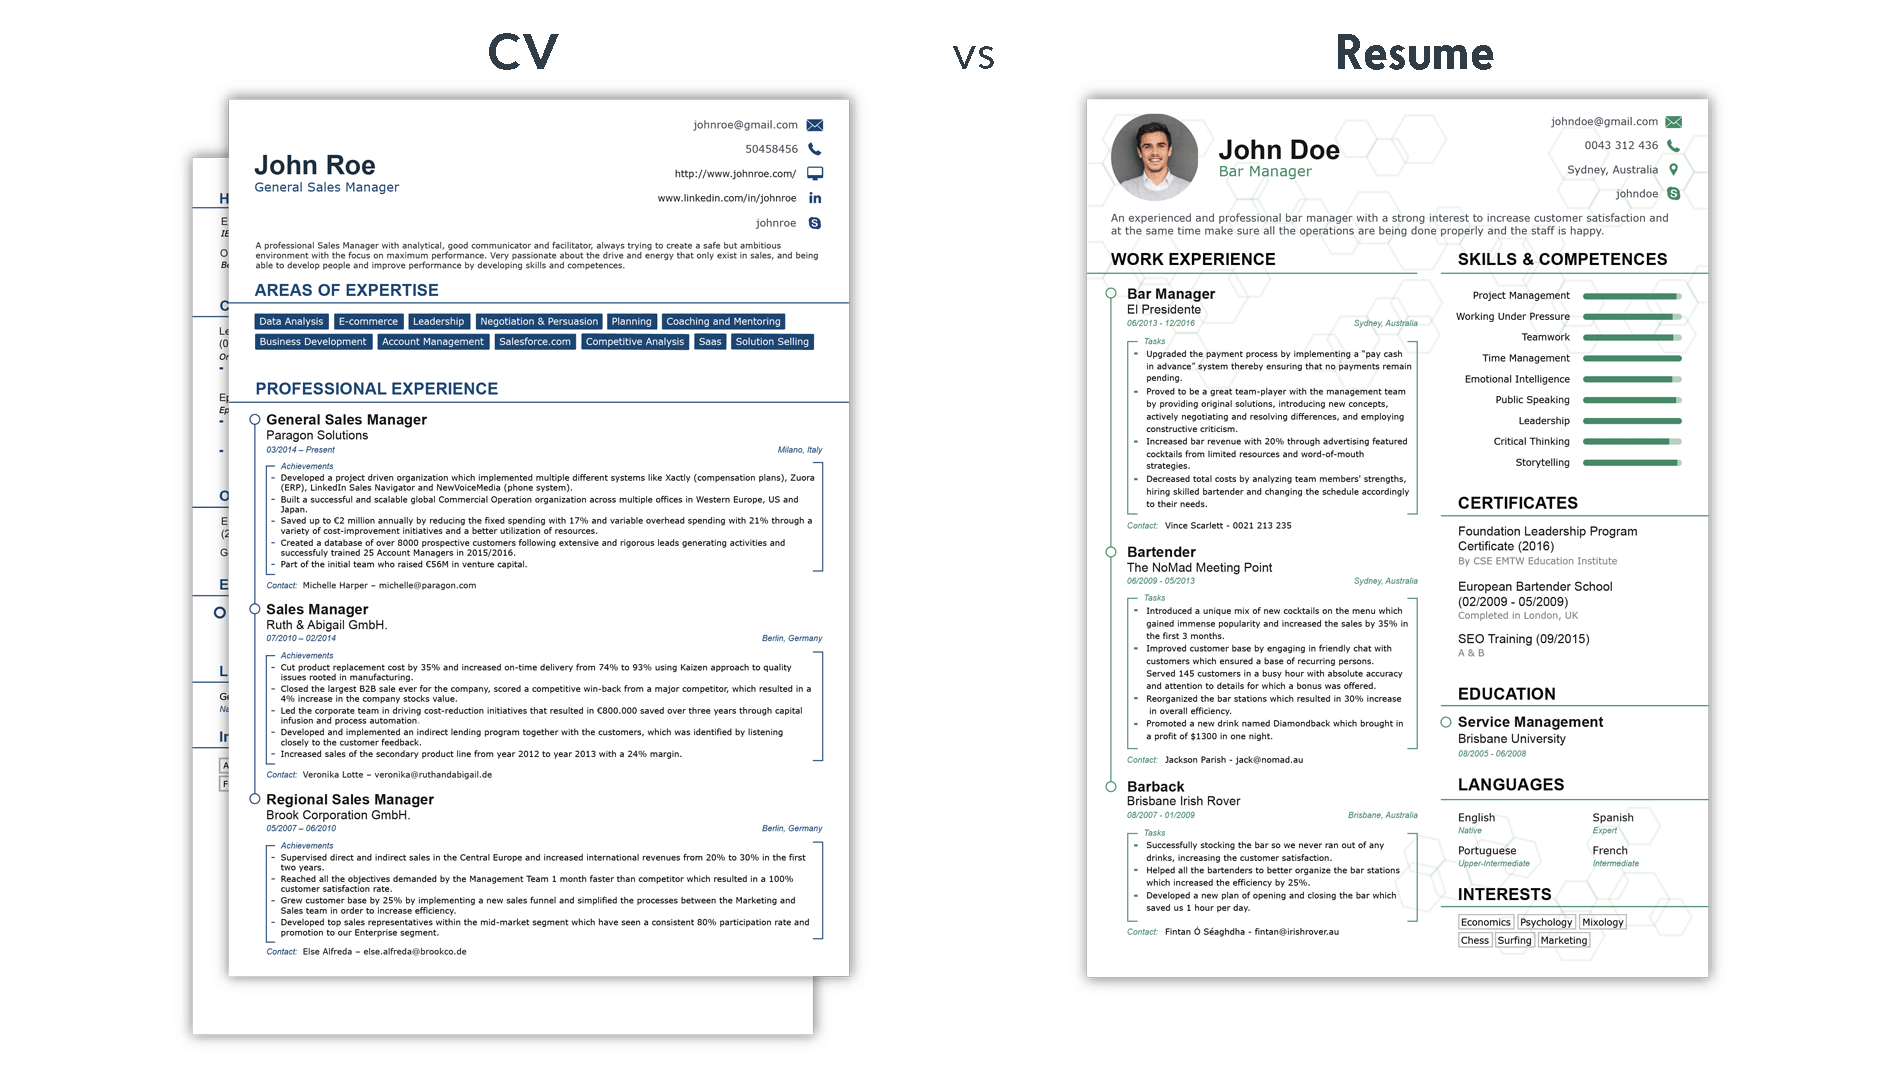 Curriculum Vitae Vs Resume  Smallest Font For Resume